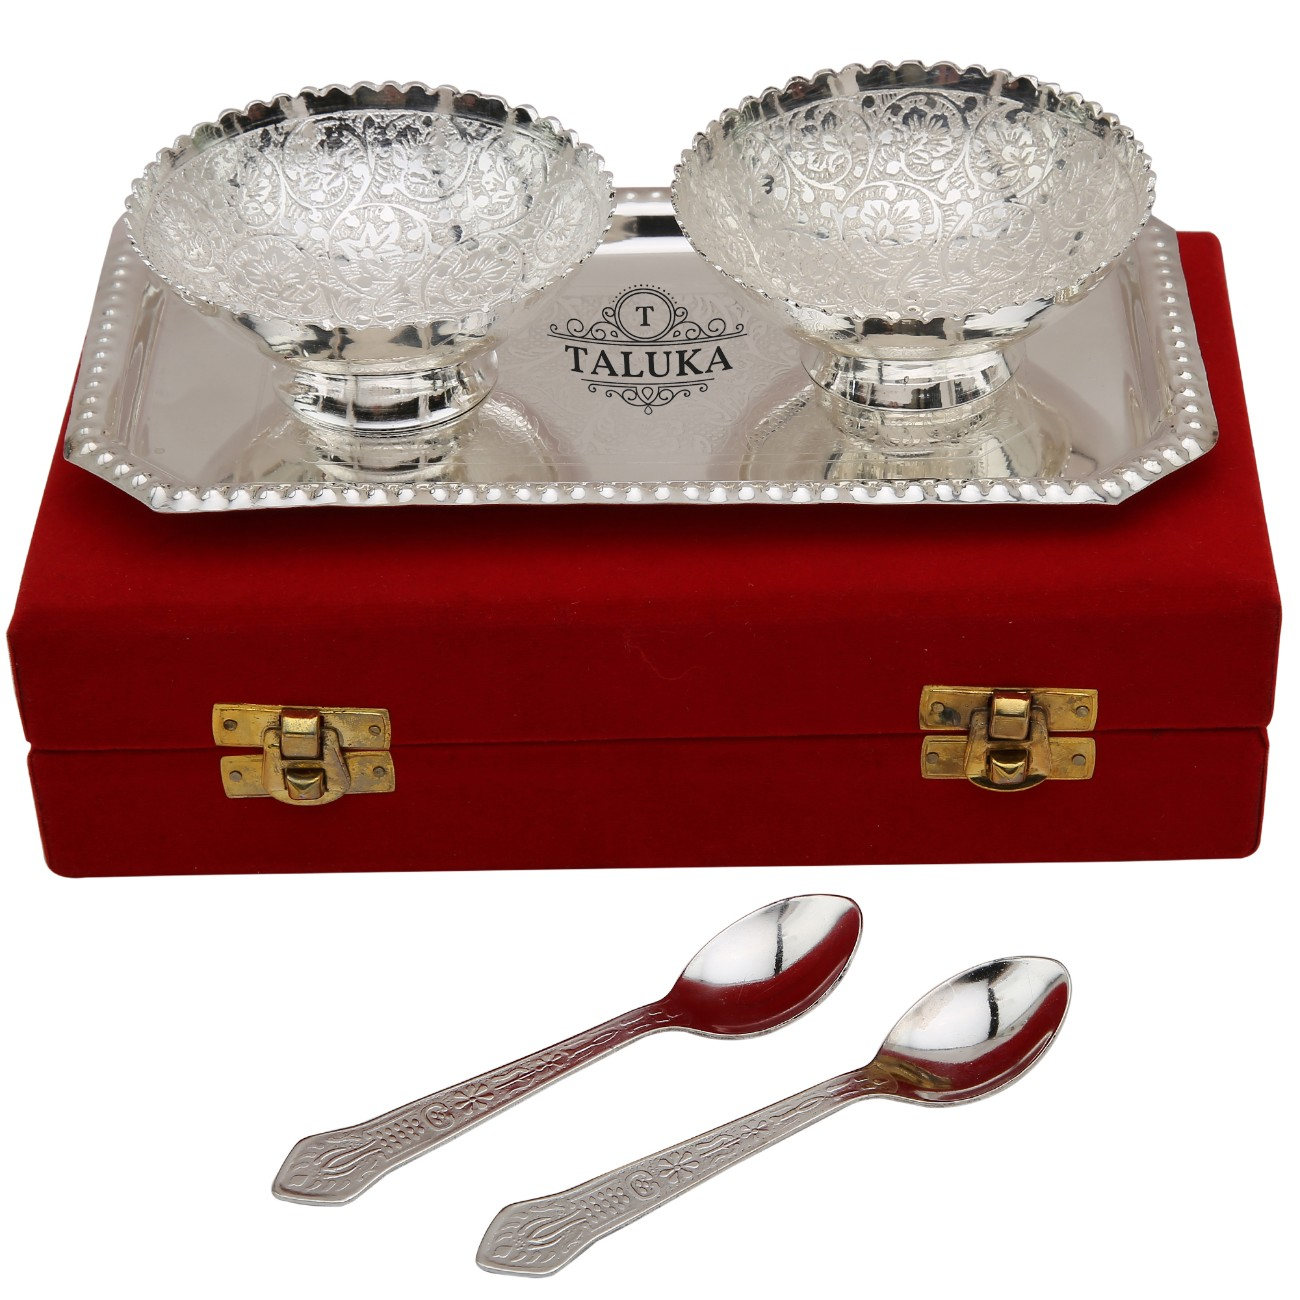 Silver Plated 2 Bowl Deep Dish 2 Spoons 1 Tray for Spoon Set Gift Item